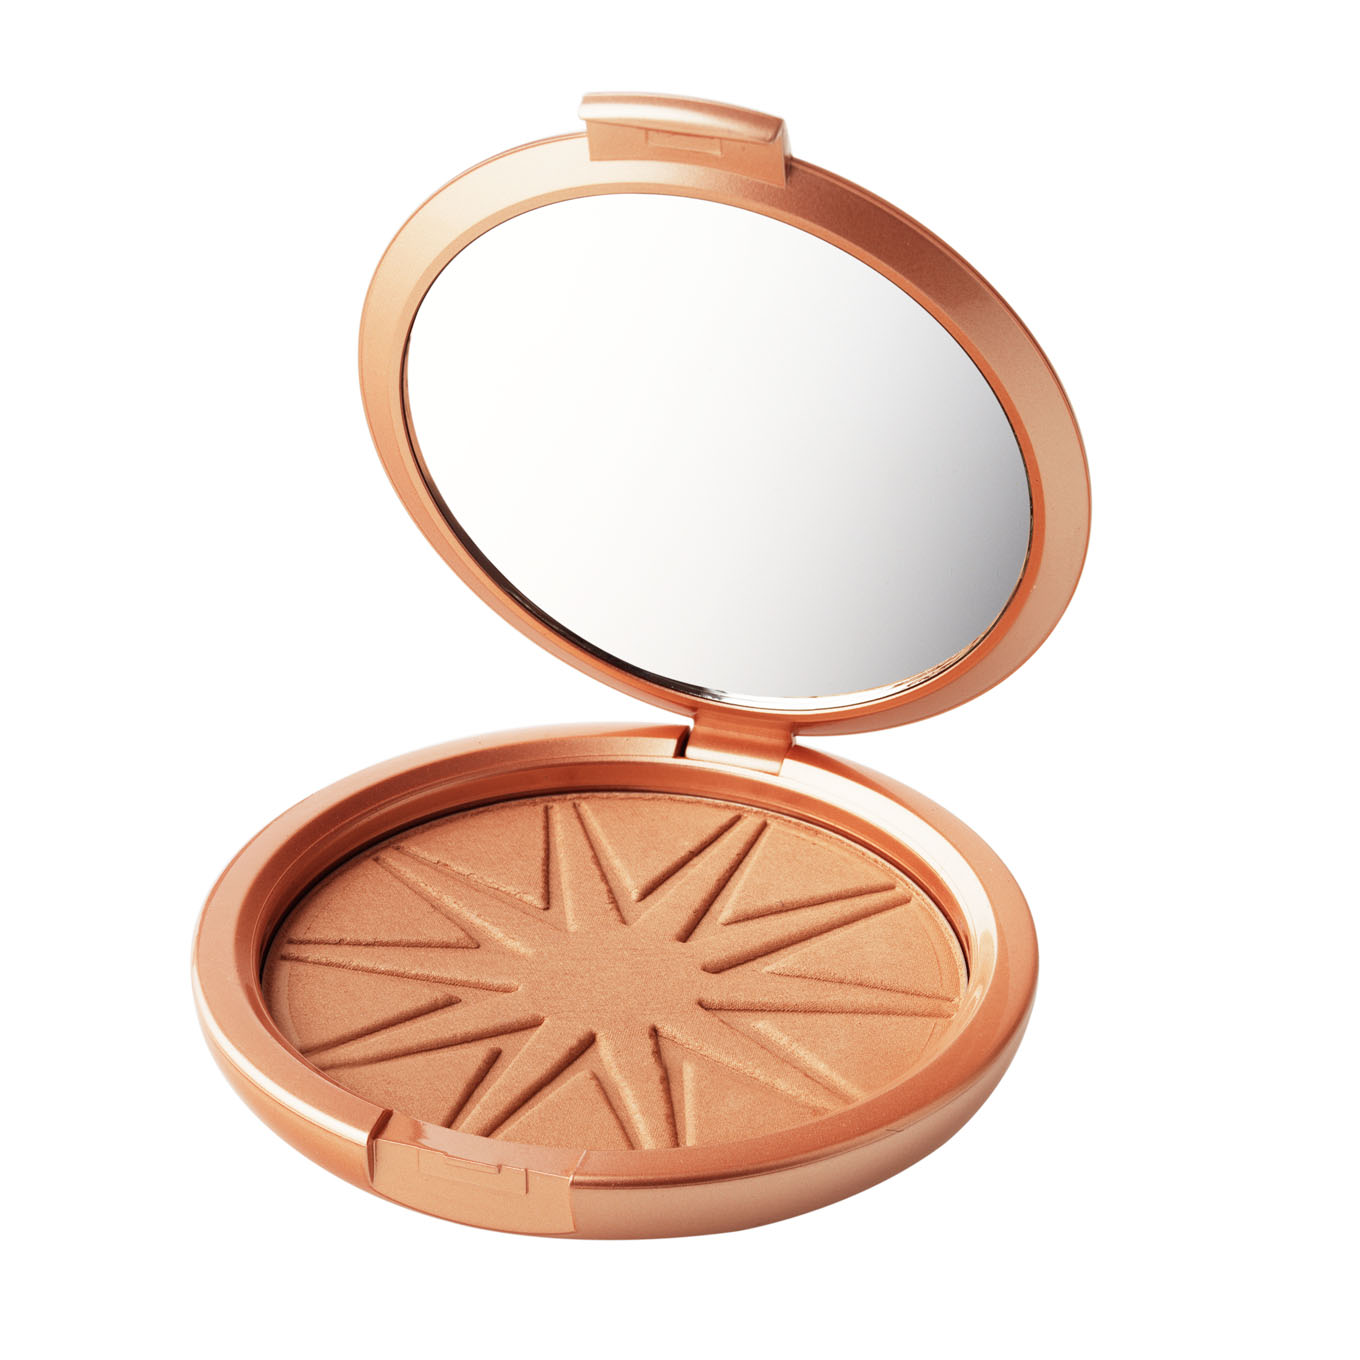 CARGO-Bronzer